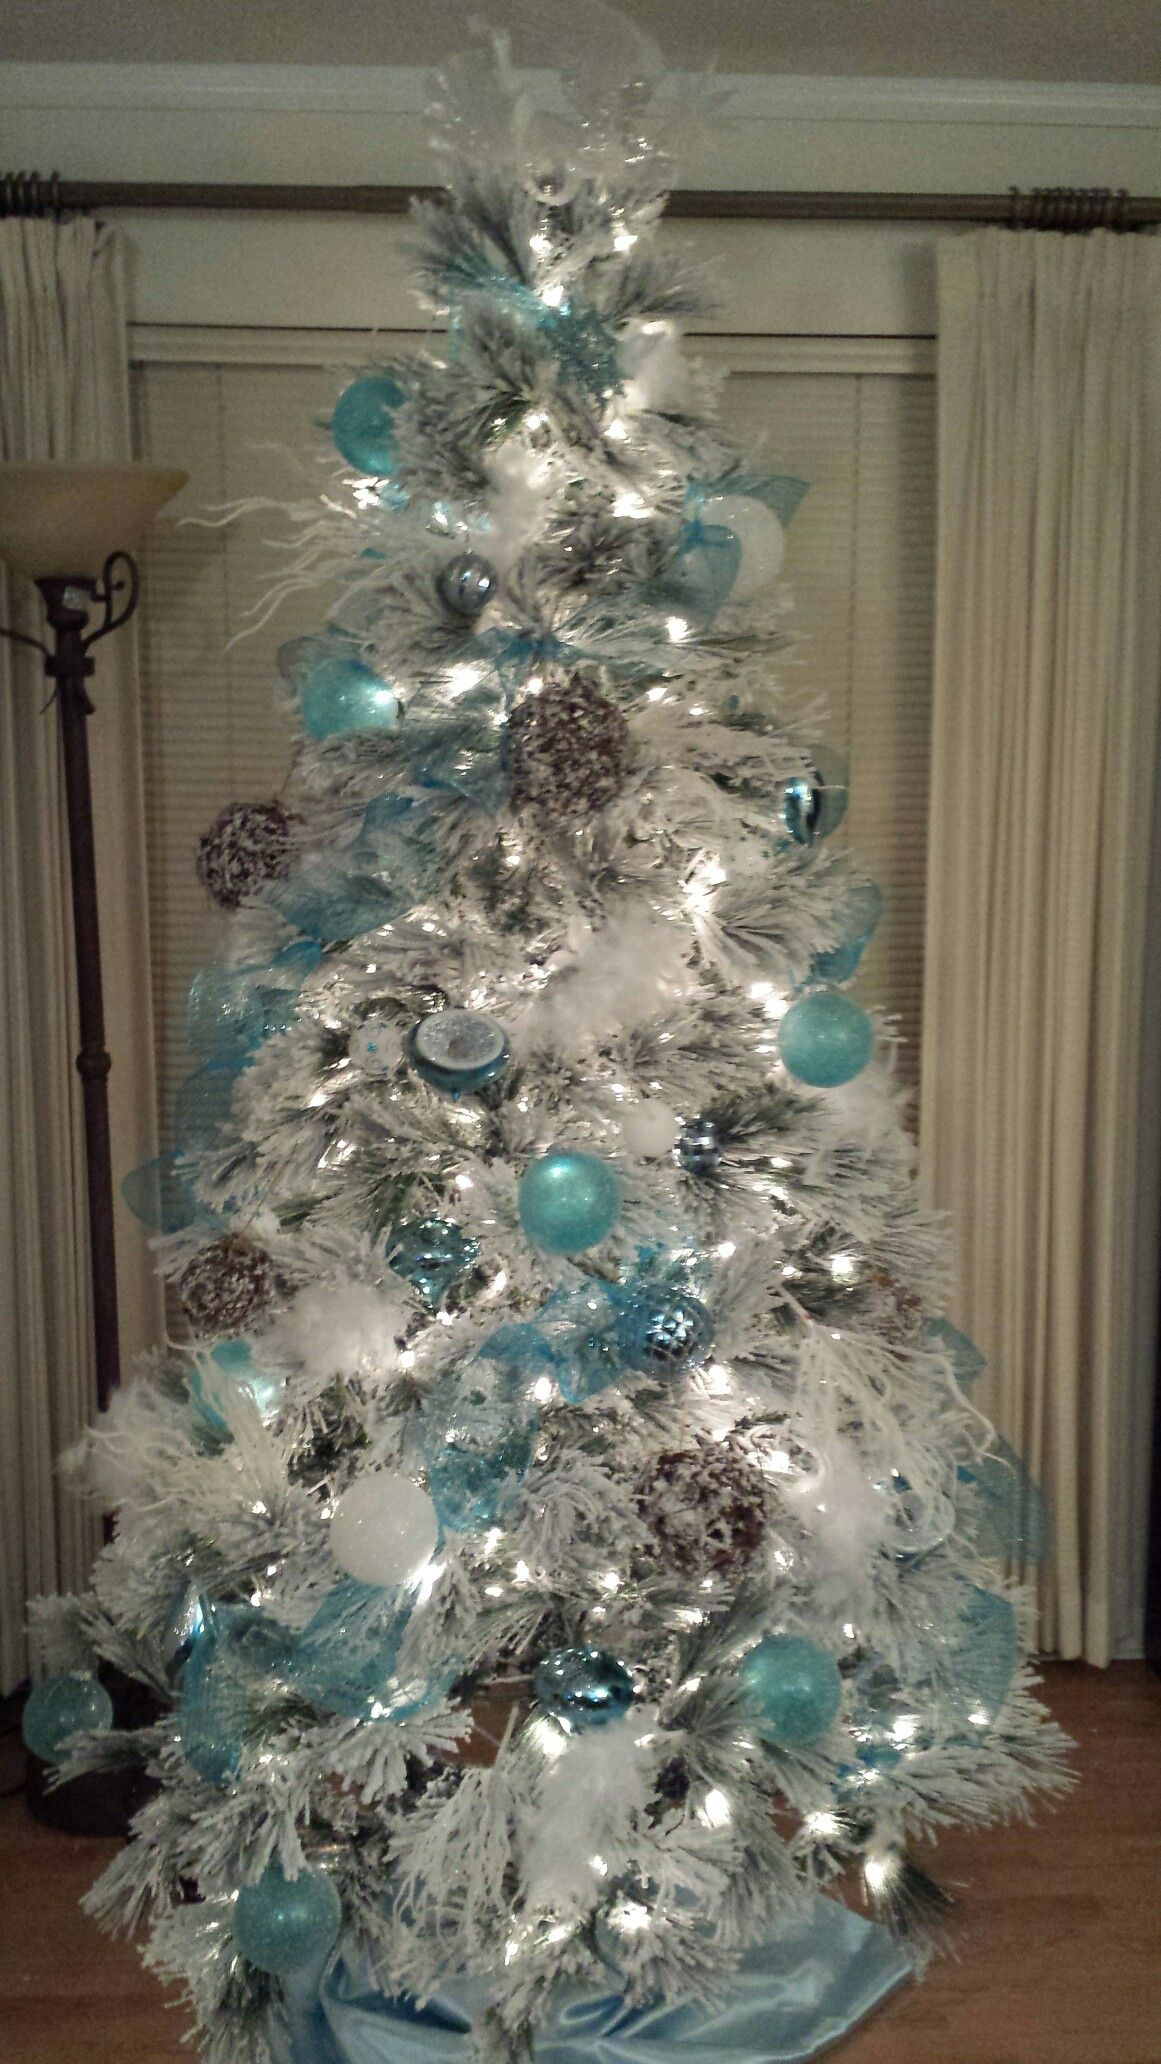 Snow White Flocked Christmas Tree Decorated With Aqua Blue Silver And Snow Vi Blue Christmas Tree White Christmas Tree Decorations White Flocked Christmas Tree